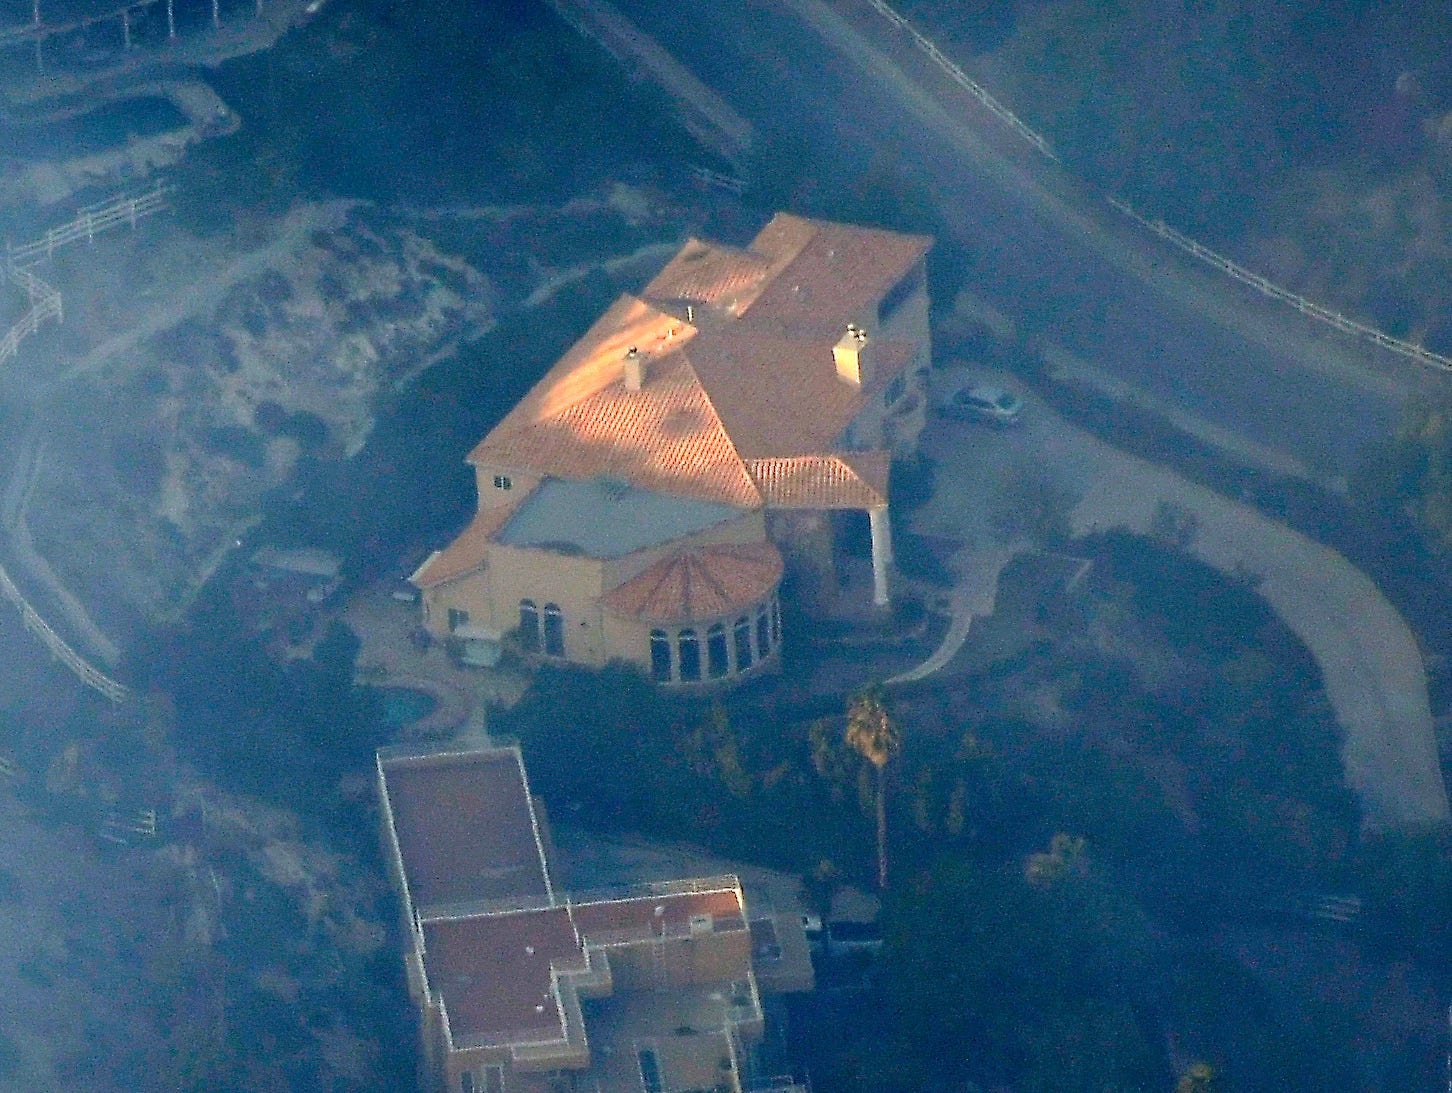 A home burns Friday in Calabasas as the Woolsey Fire races through the community on its way from the Simi Valley area to Malibu.